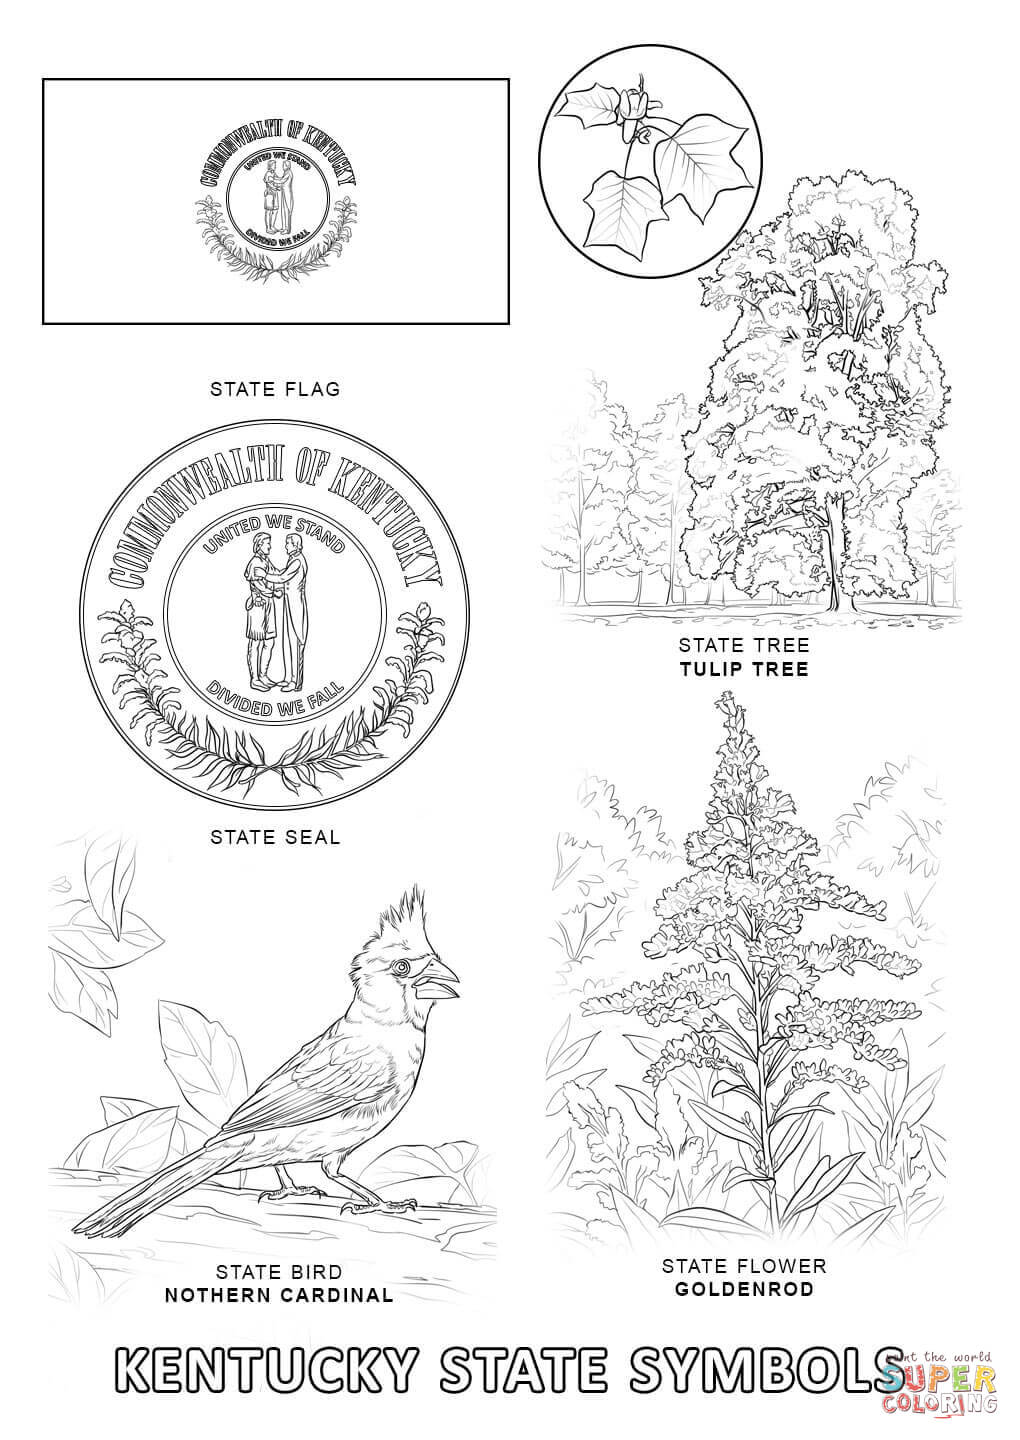 1020x1440 Kentucky State Symbols Coloring Page Free Printable Coloring Pages